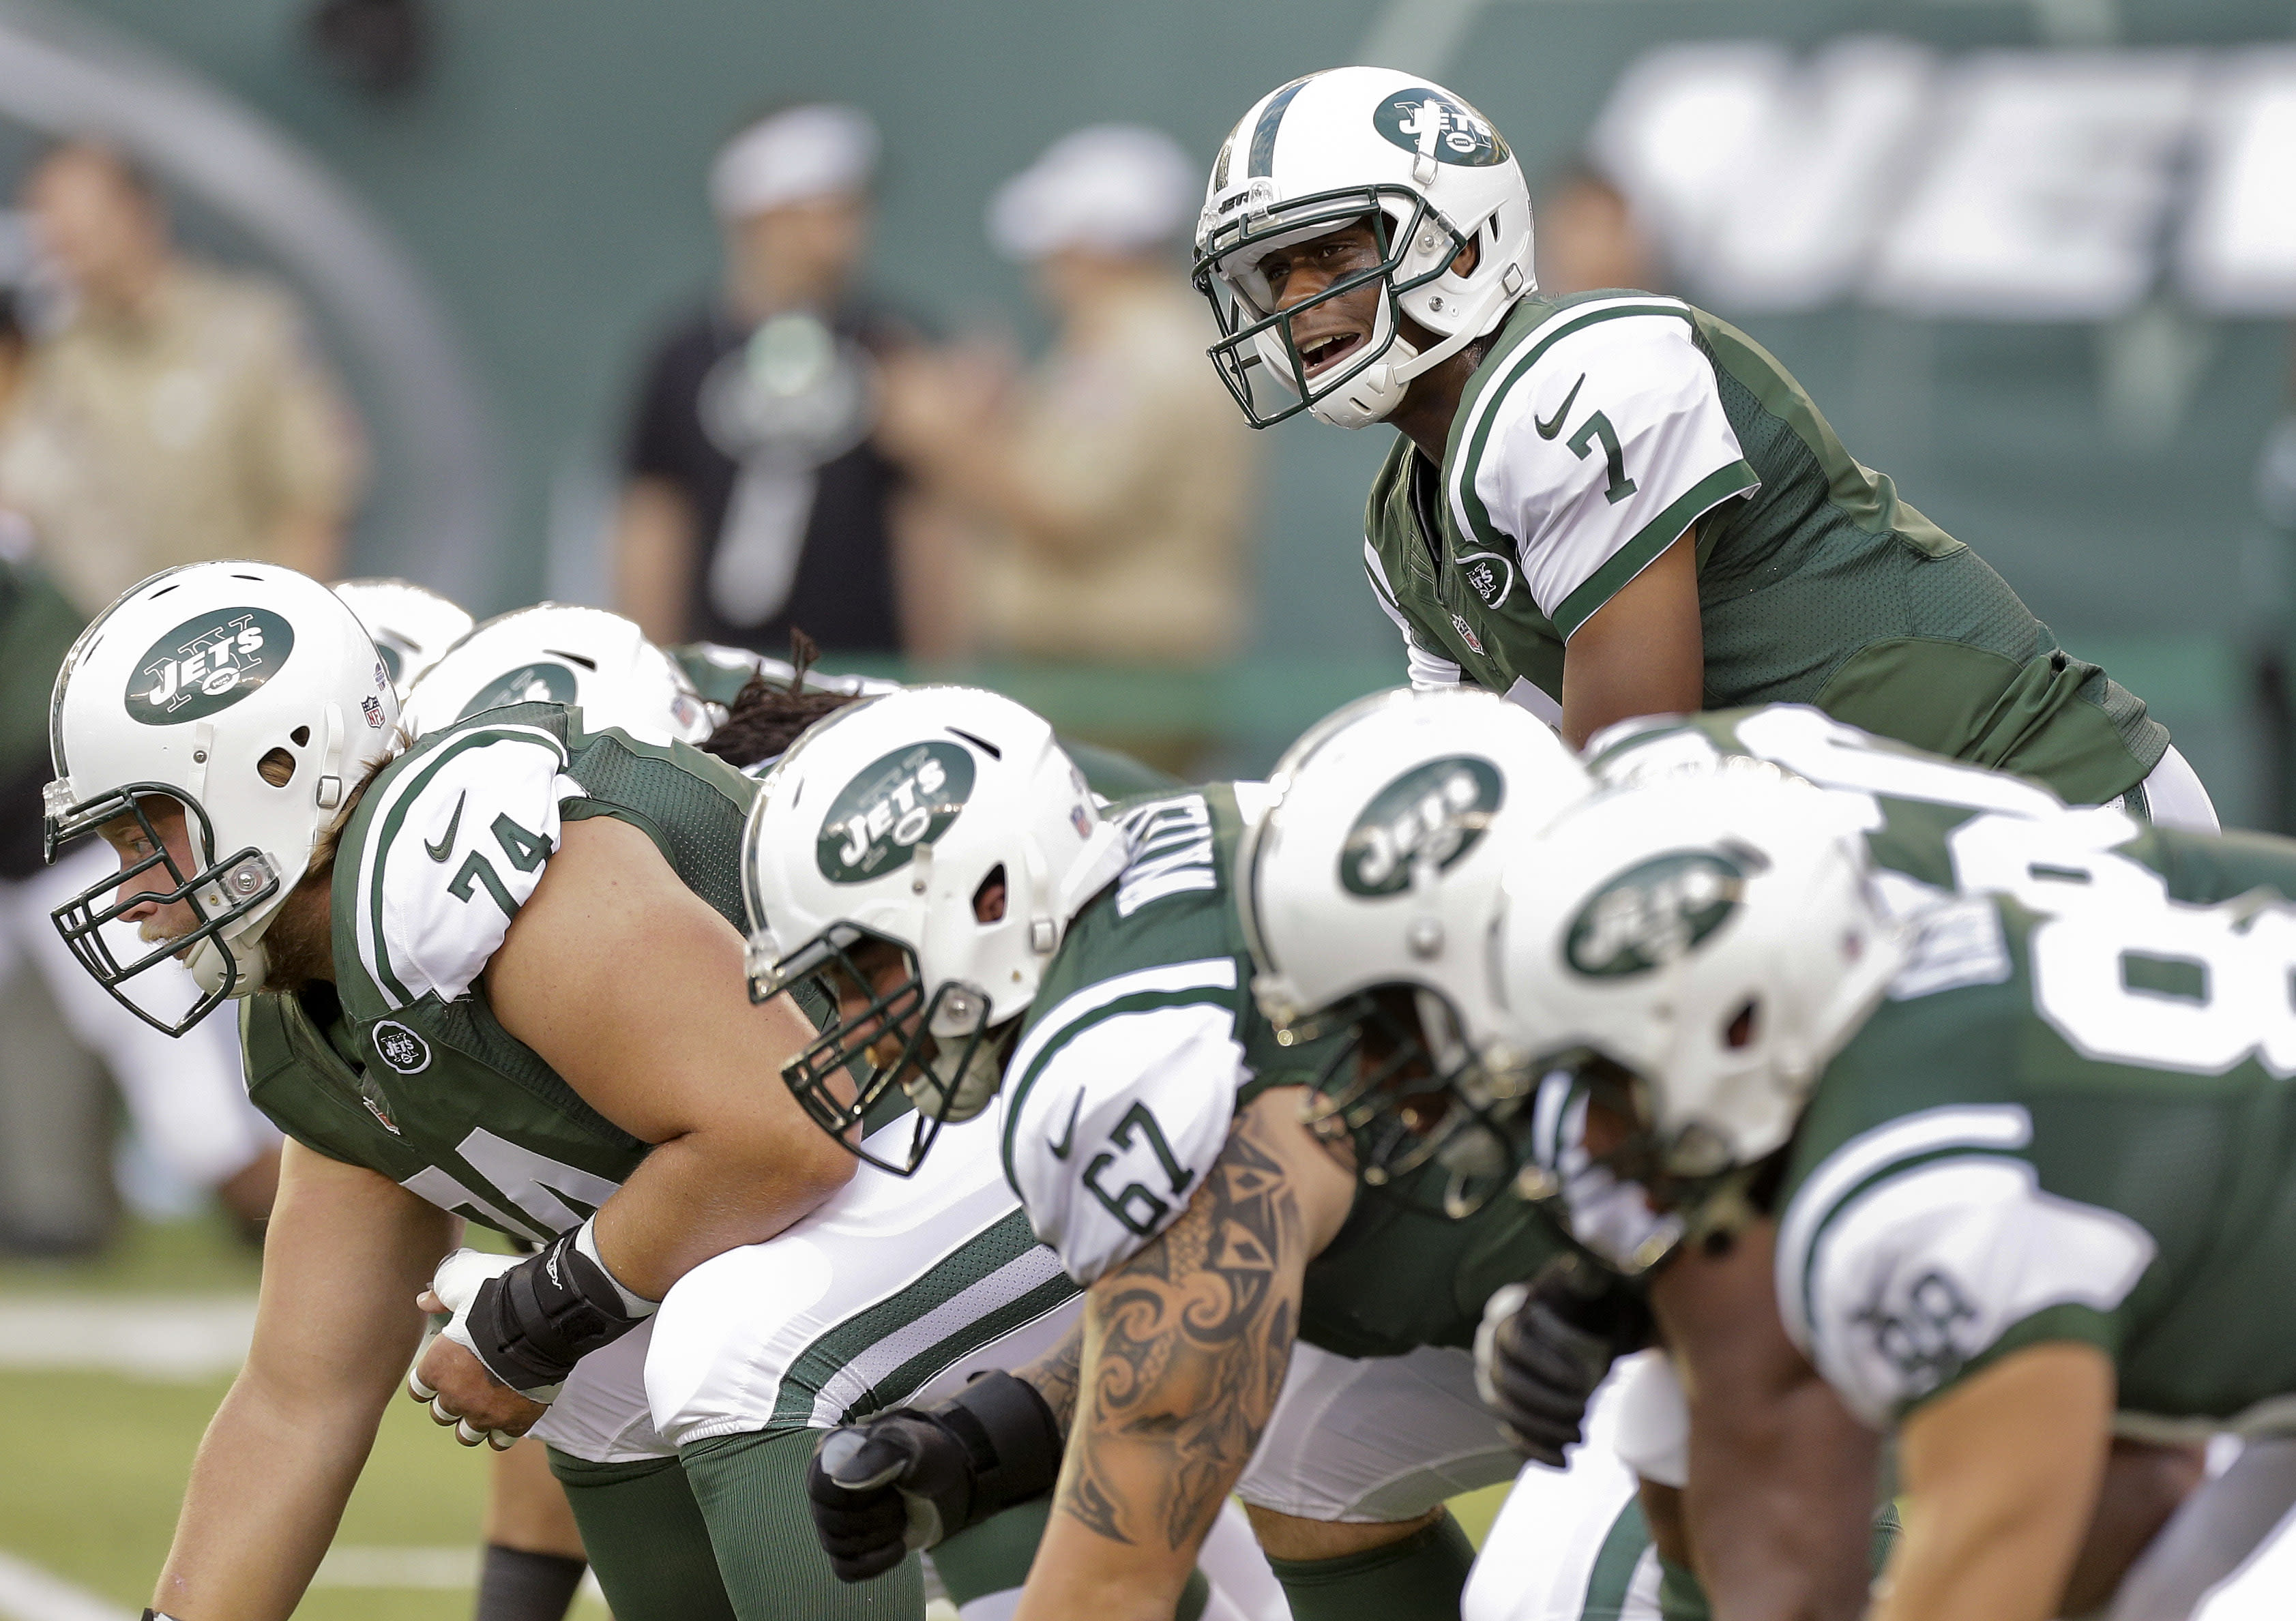 Smith sees himself as Jets' QB 'for a long time'